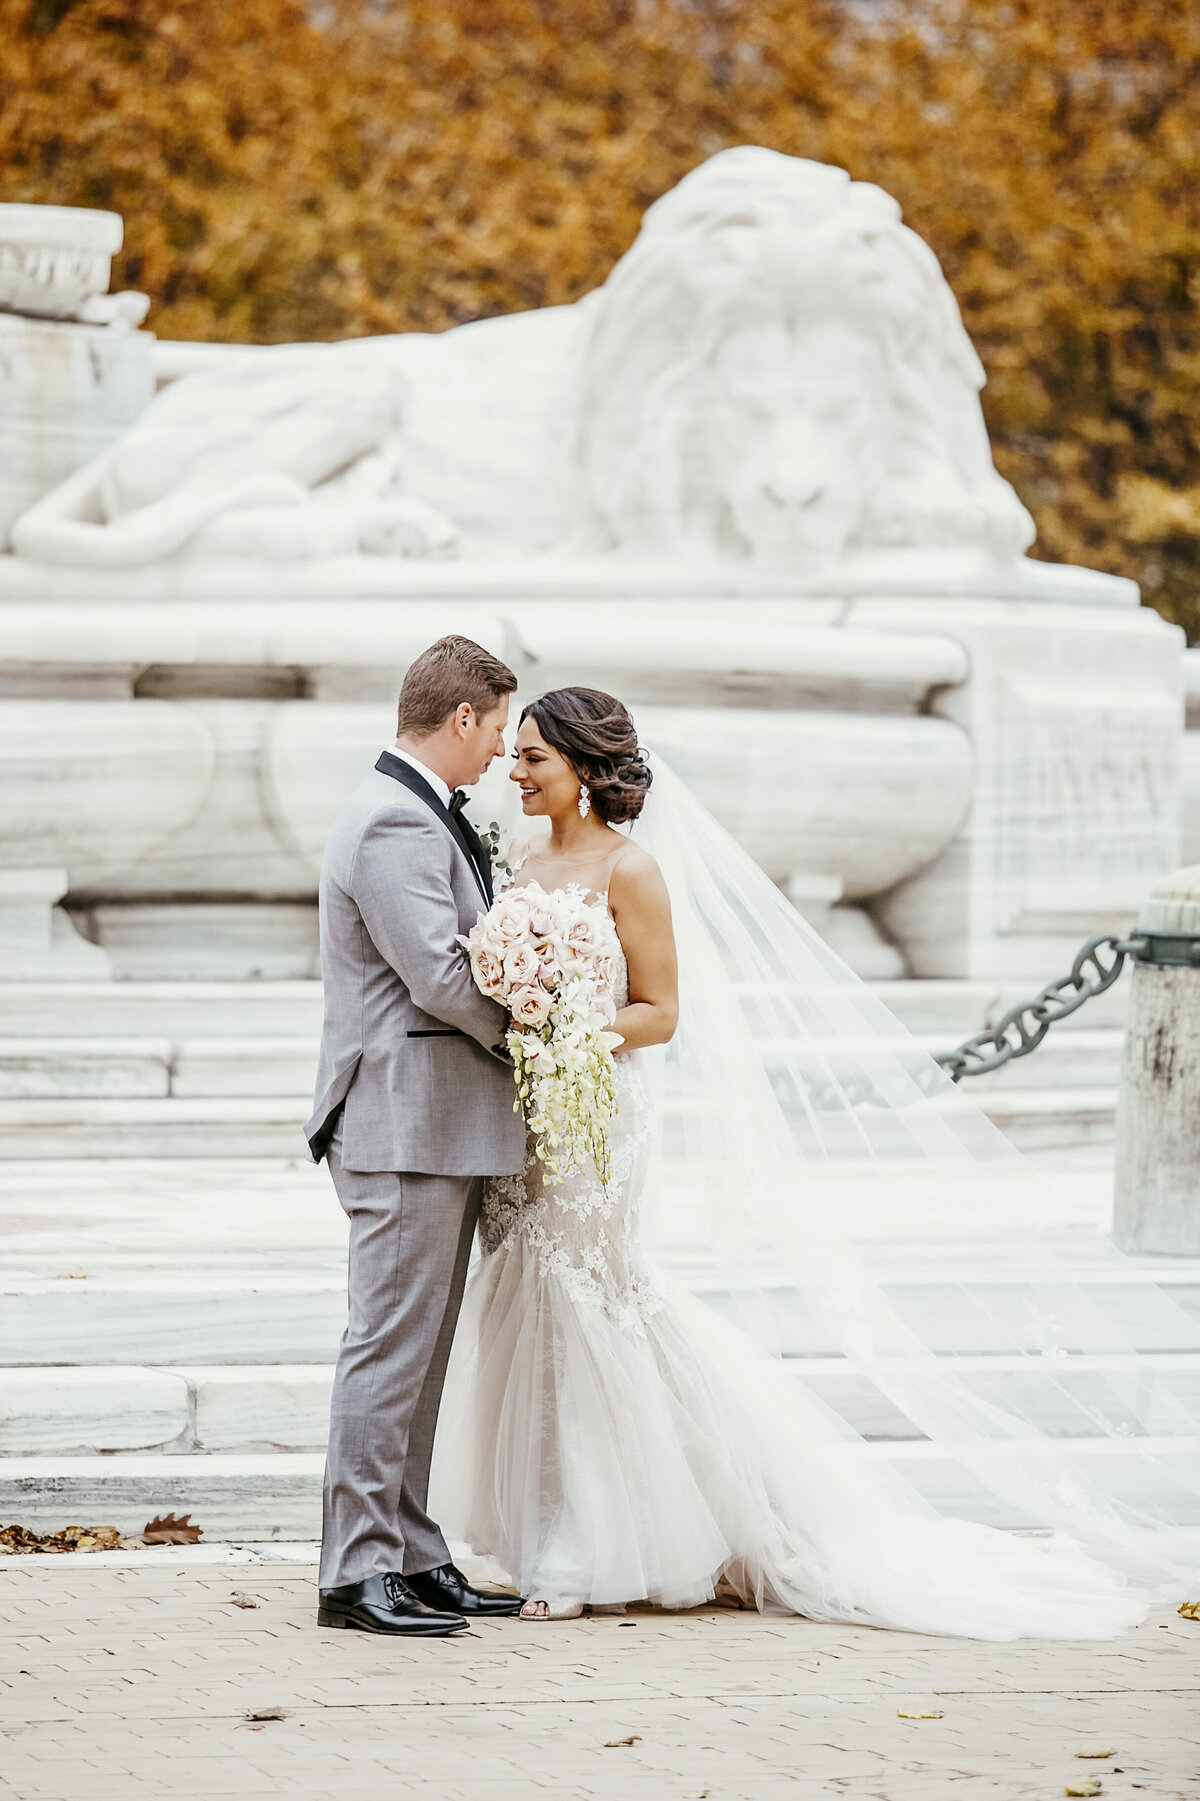 Autumn wedding with bride and groom embracing in front of monument in Buffalo, New York